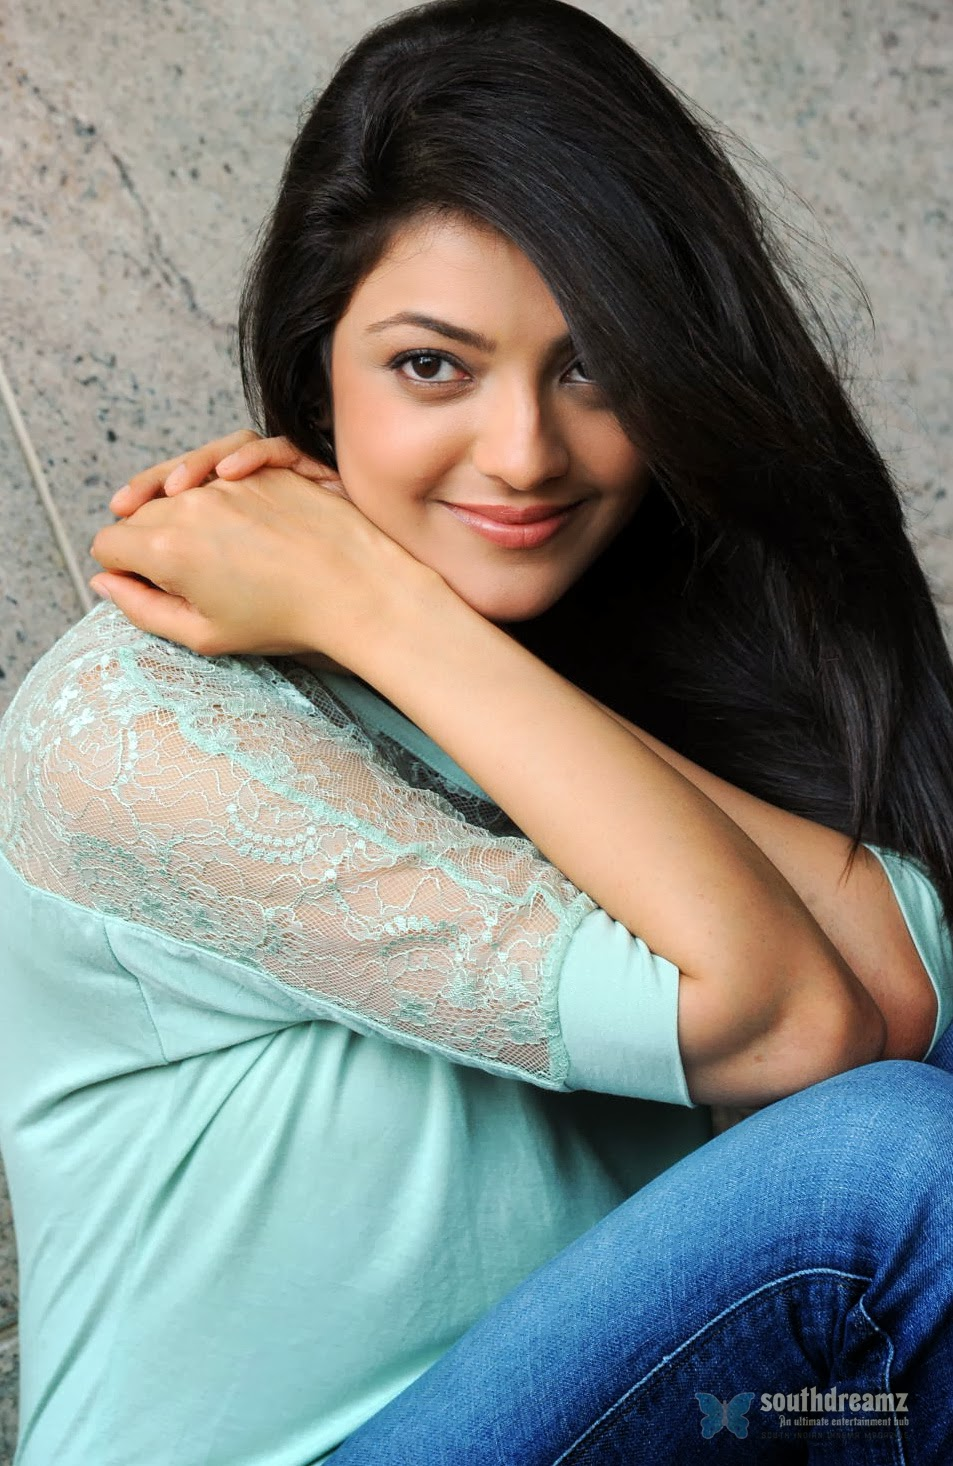 hritik roshan hd wallpaper: kajal agarwal wallpapers